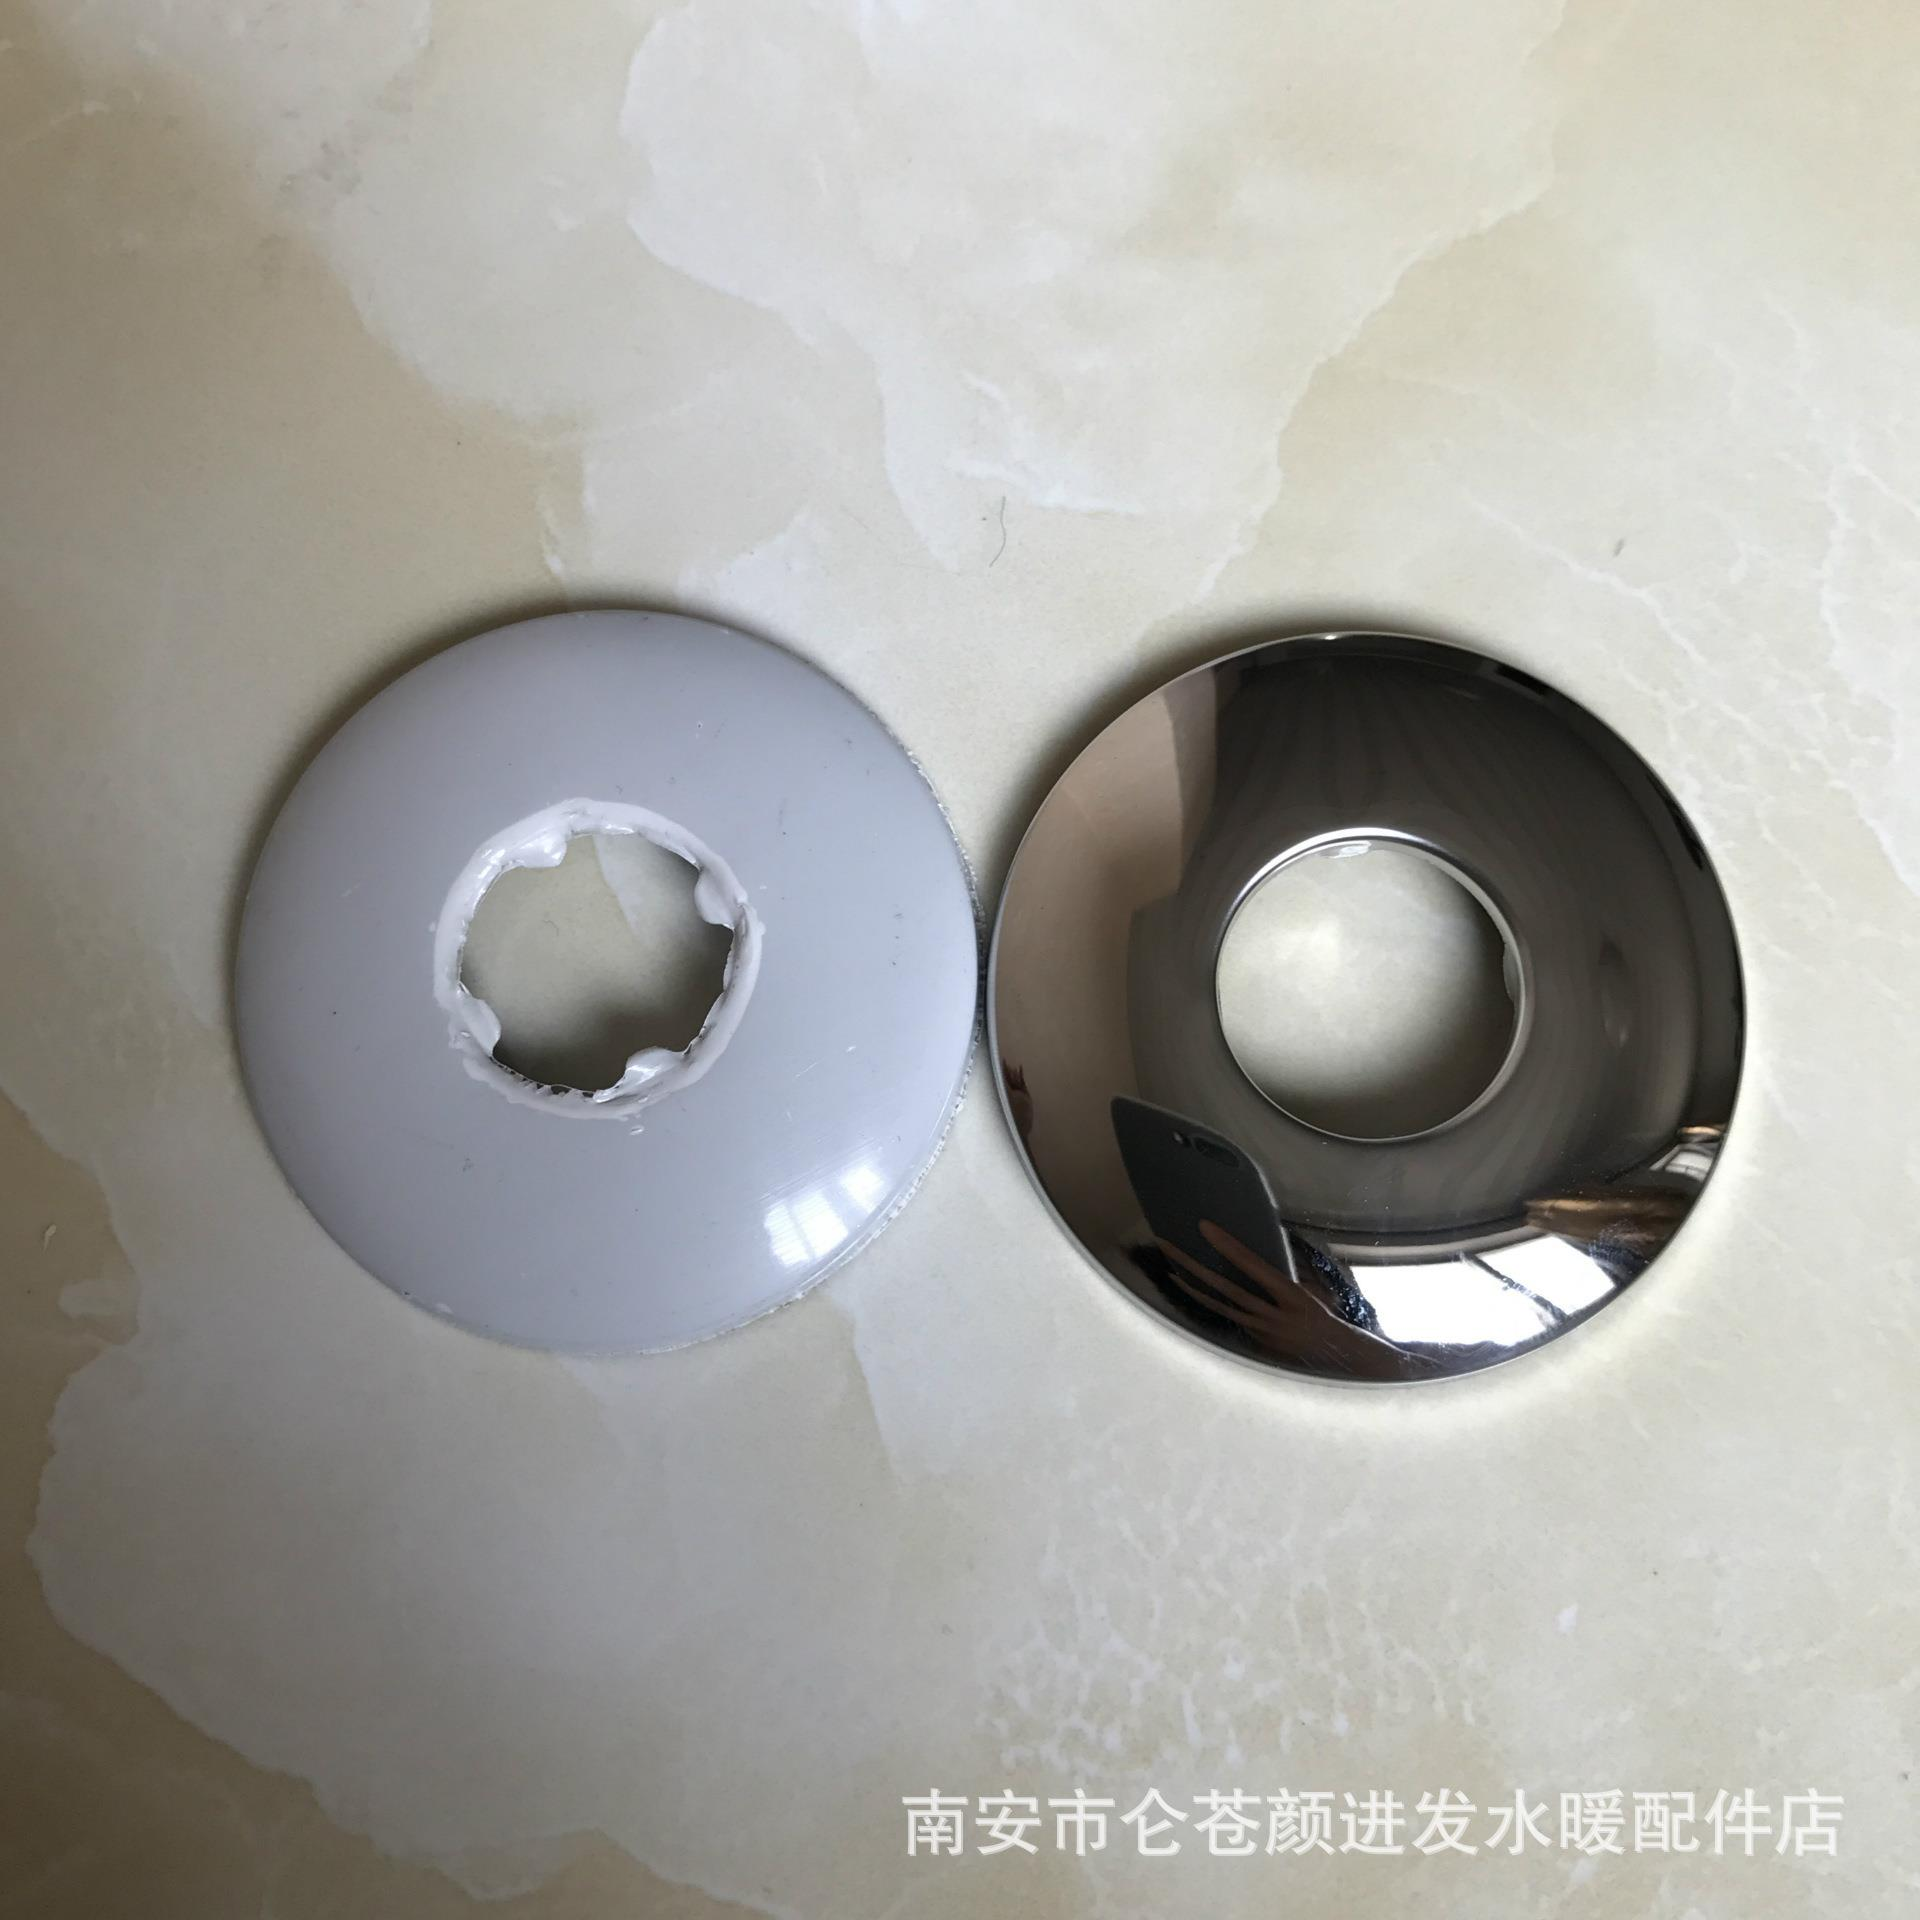 Stainless Steel 201 Bright Curved Surface Coating 4/8=1/2 Widening (55mm) Triangular Valve Faucet Decorative Cover Ugly Cover